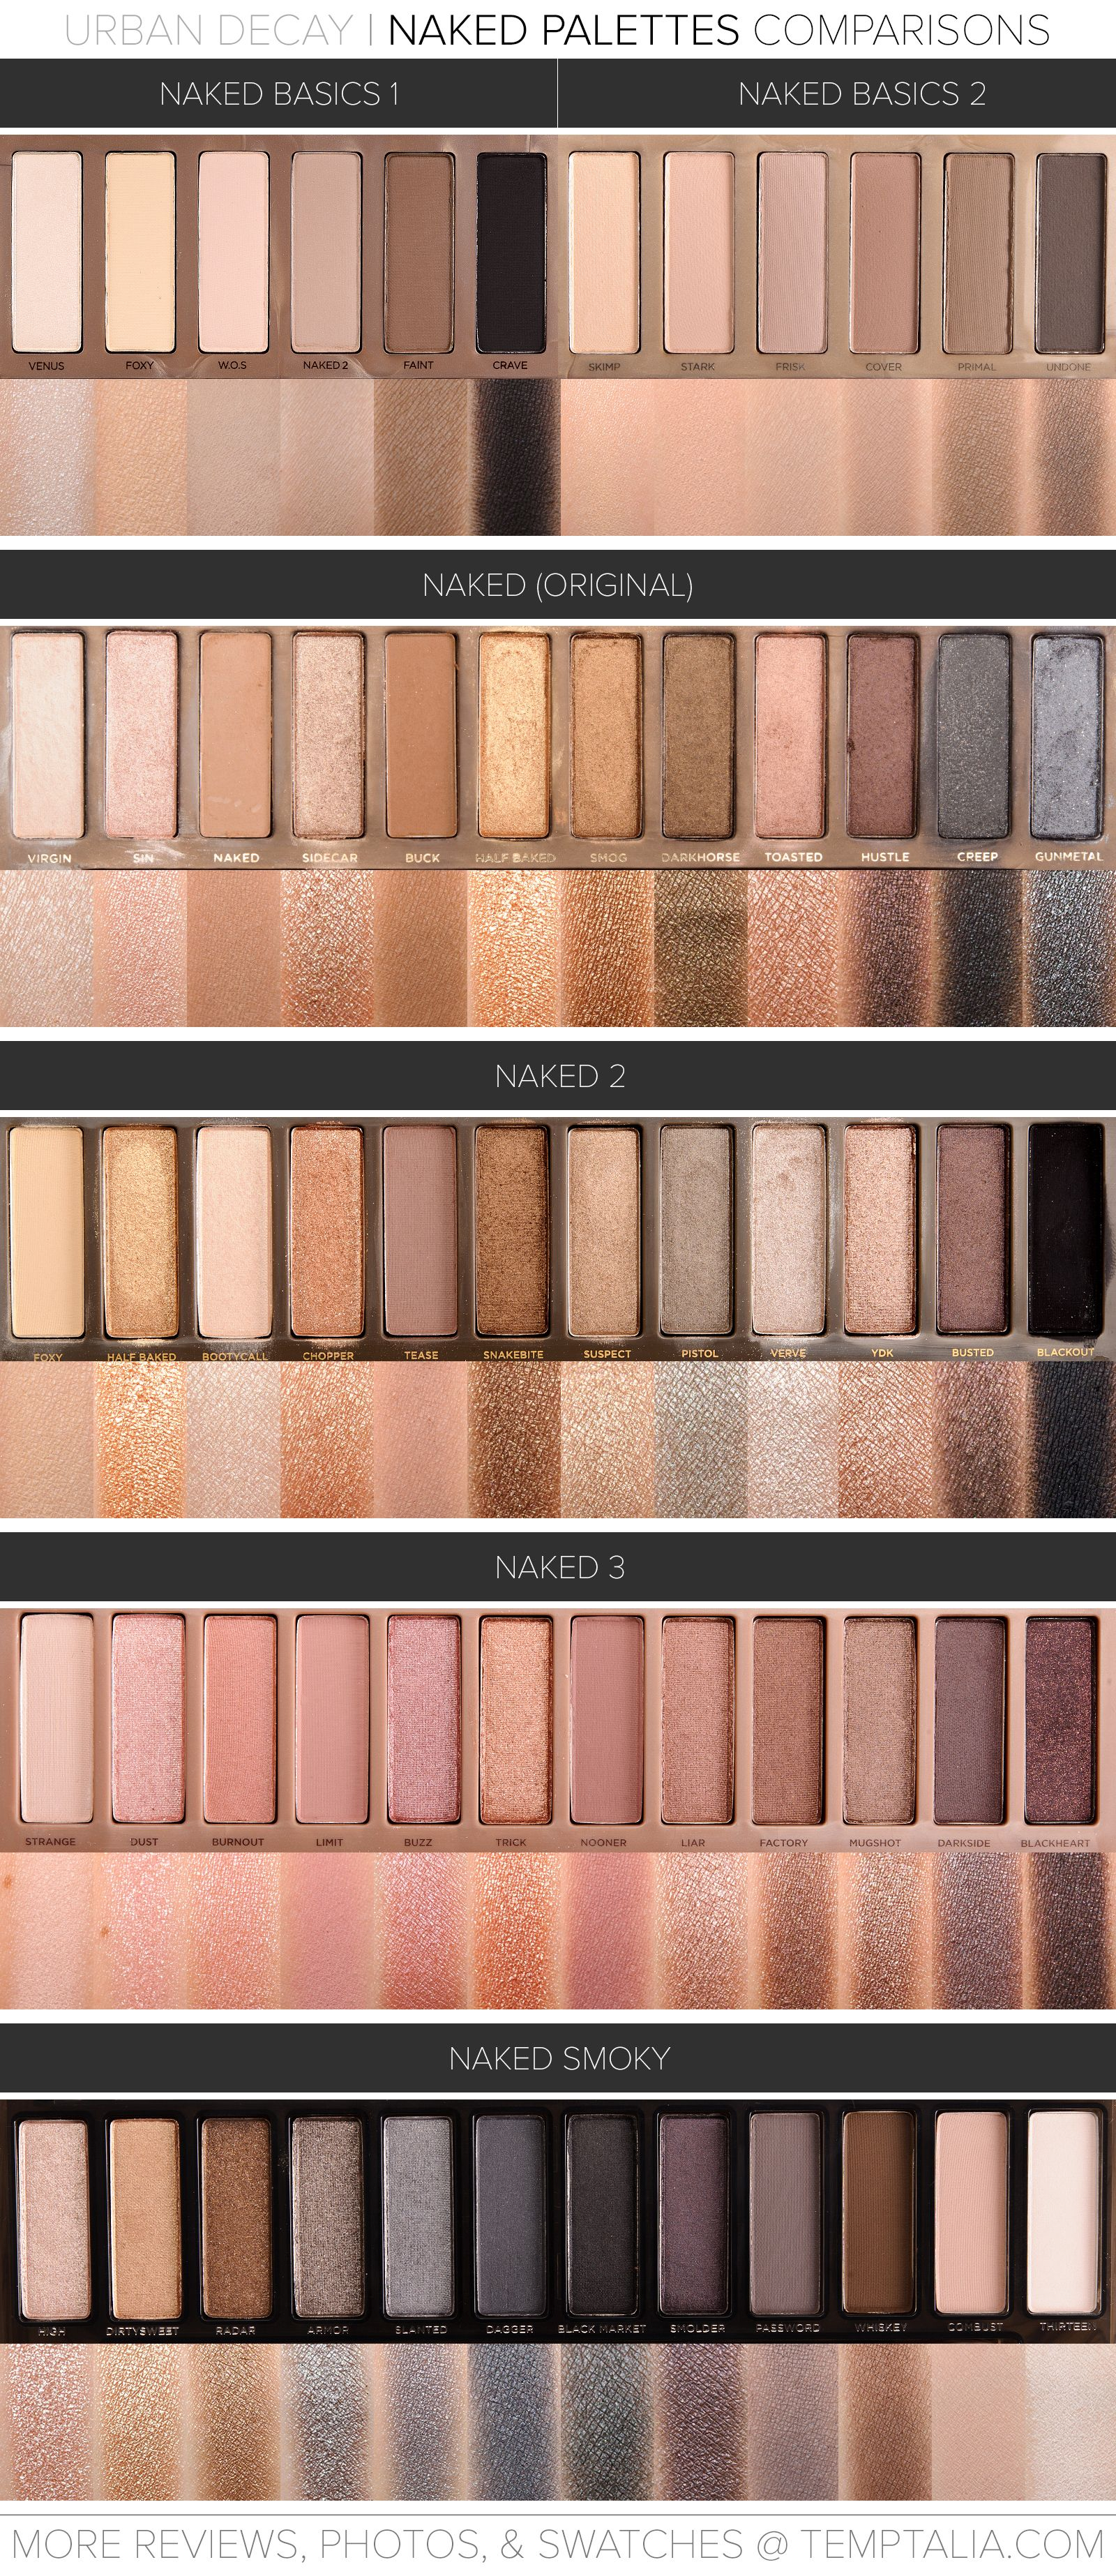 Urban Decay Naked Palettes Mega Comparison Photos & Swatches